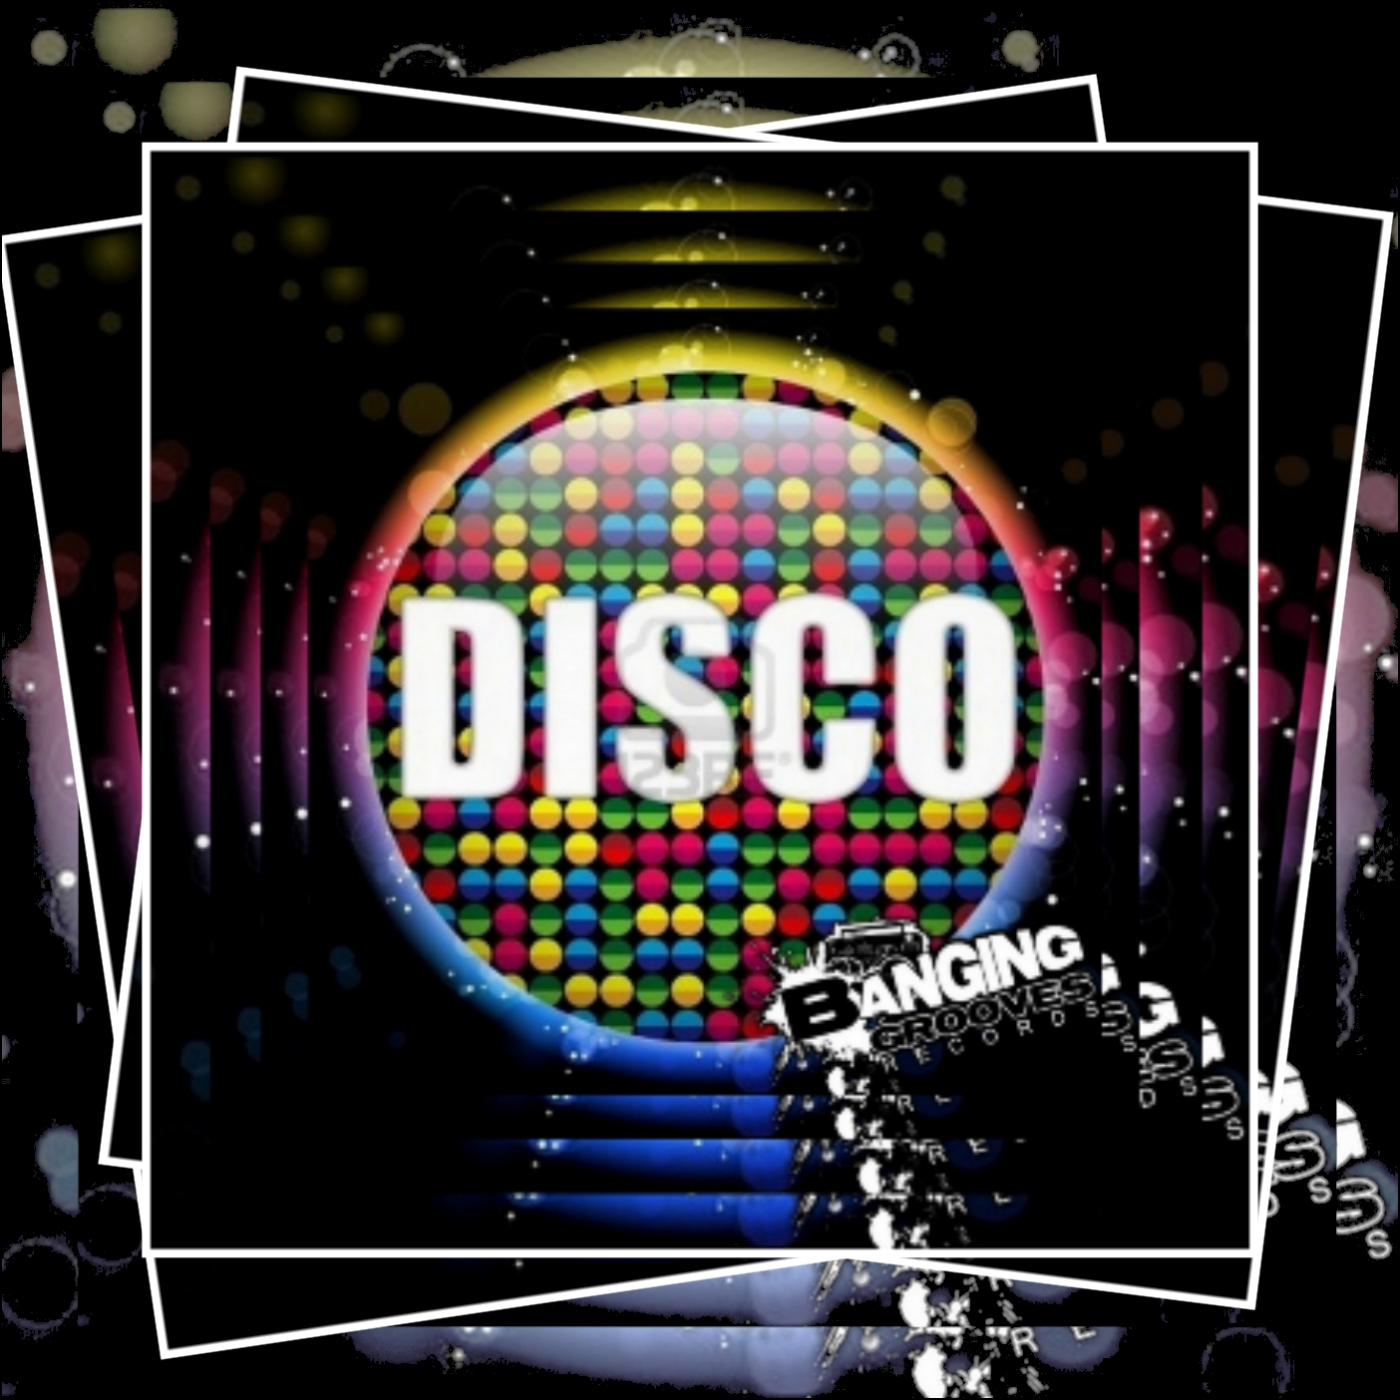 DJ Funsko - Disco Vibe Remixed (Original Mix)